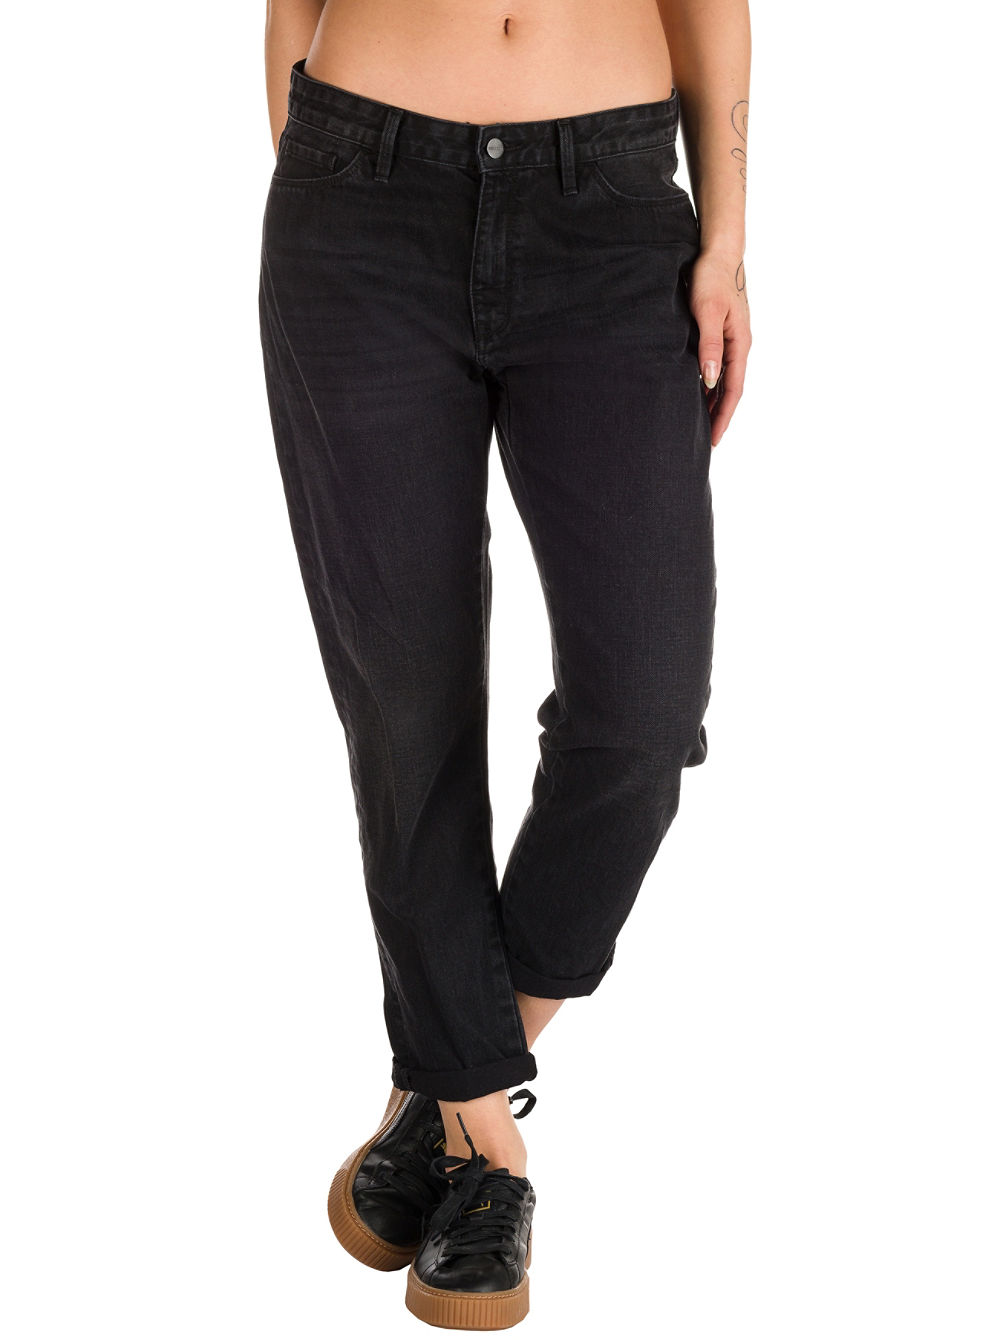 Domino Ankle Jeans